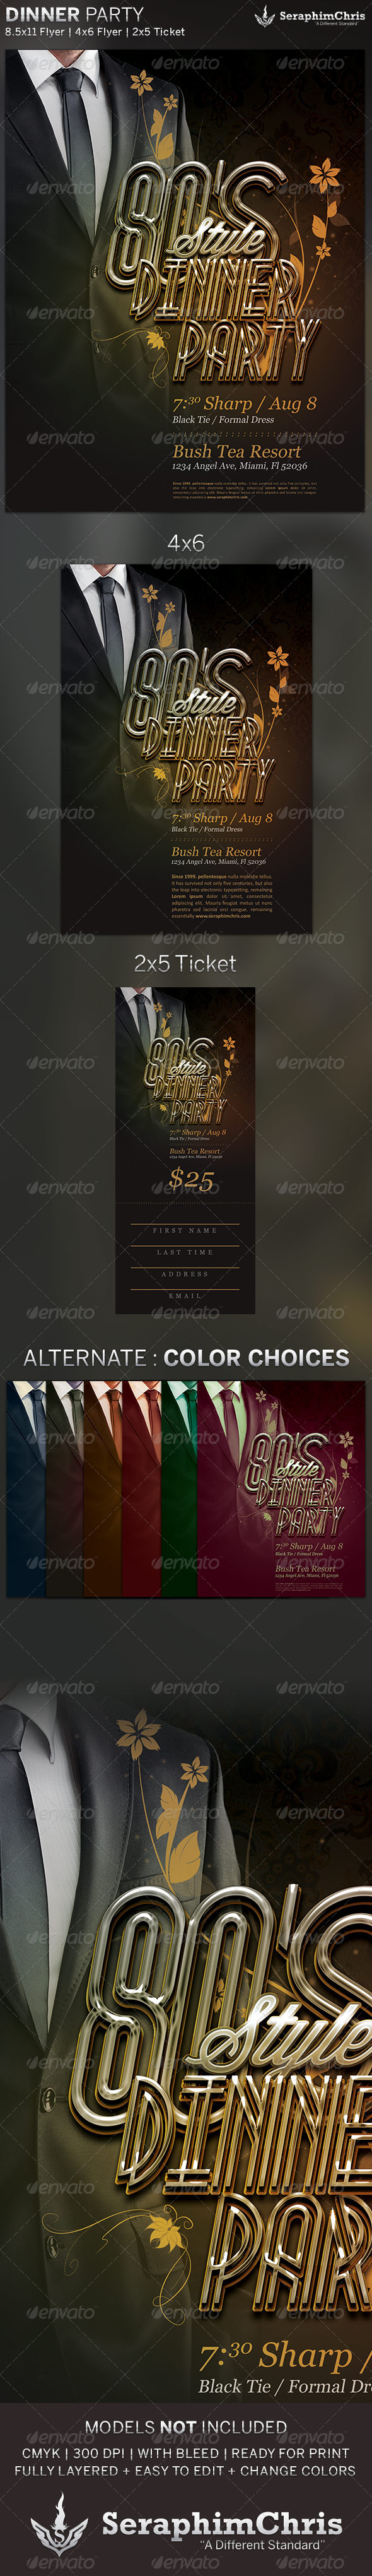 80's Dinner Party: Flyer and Ticket Template